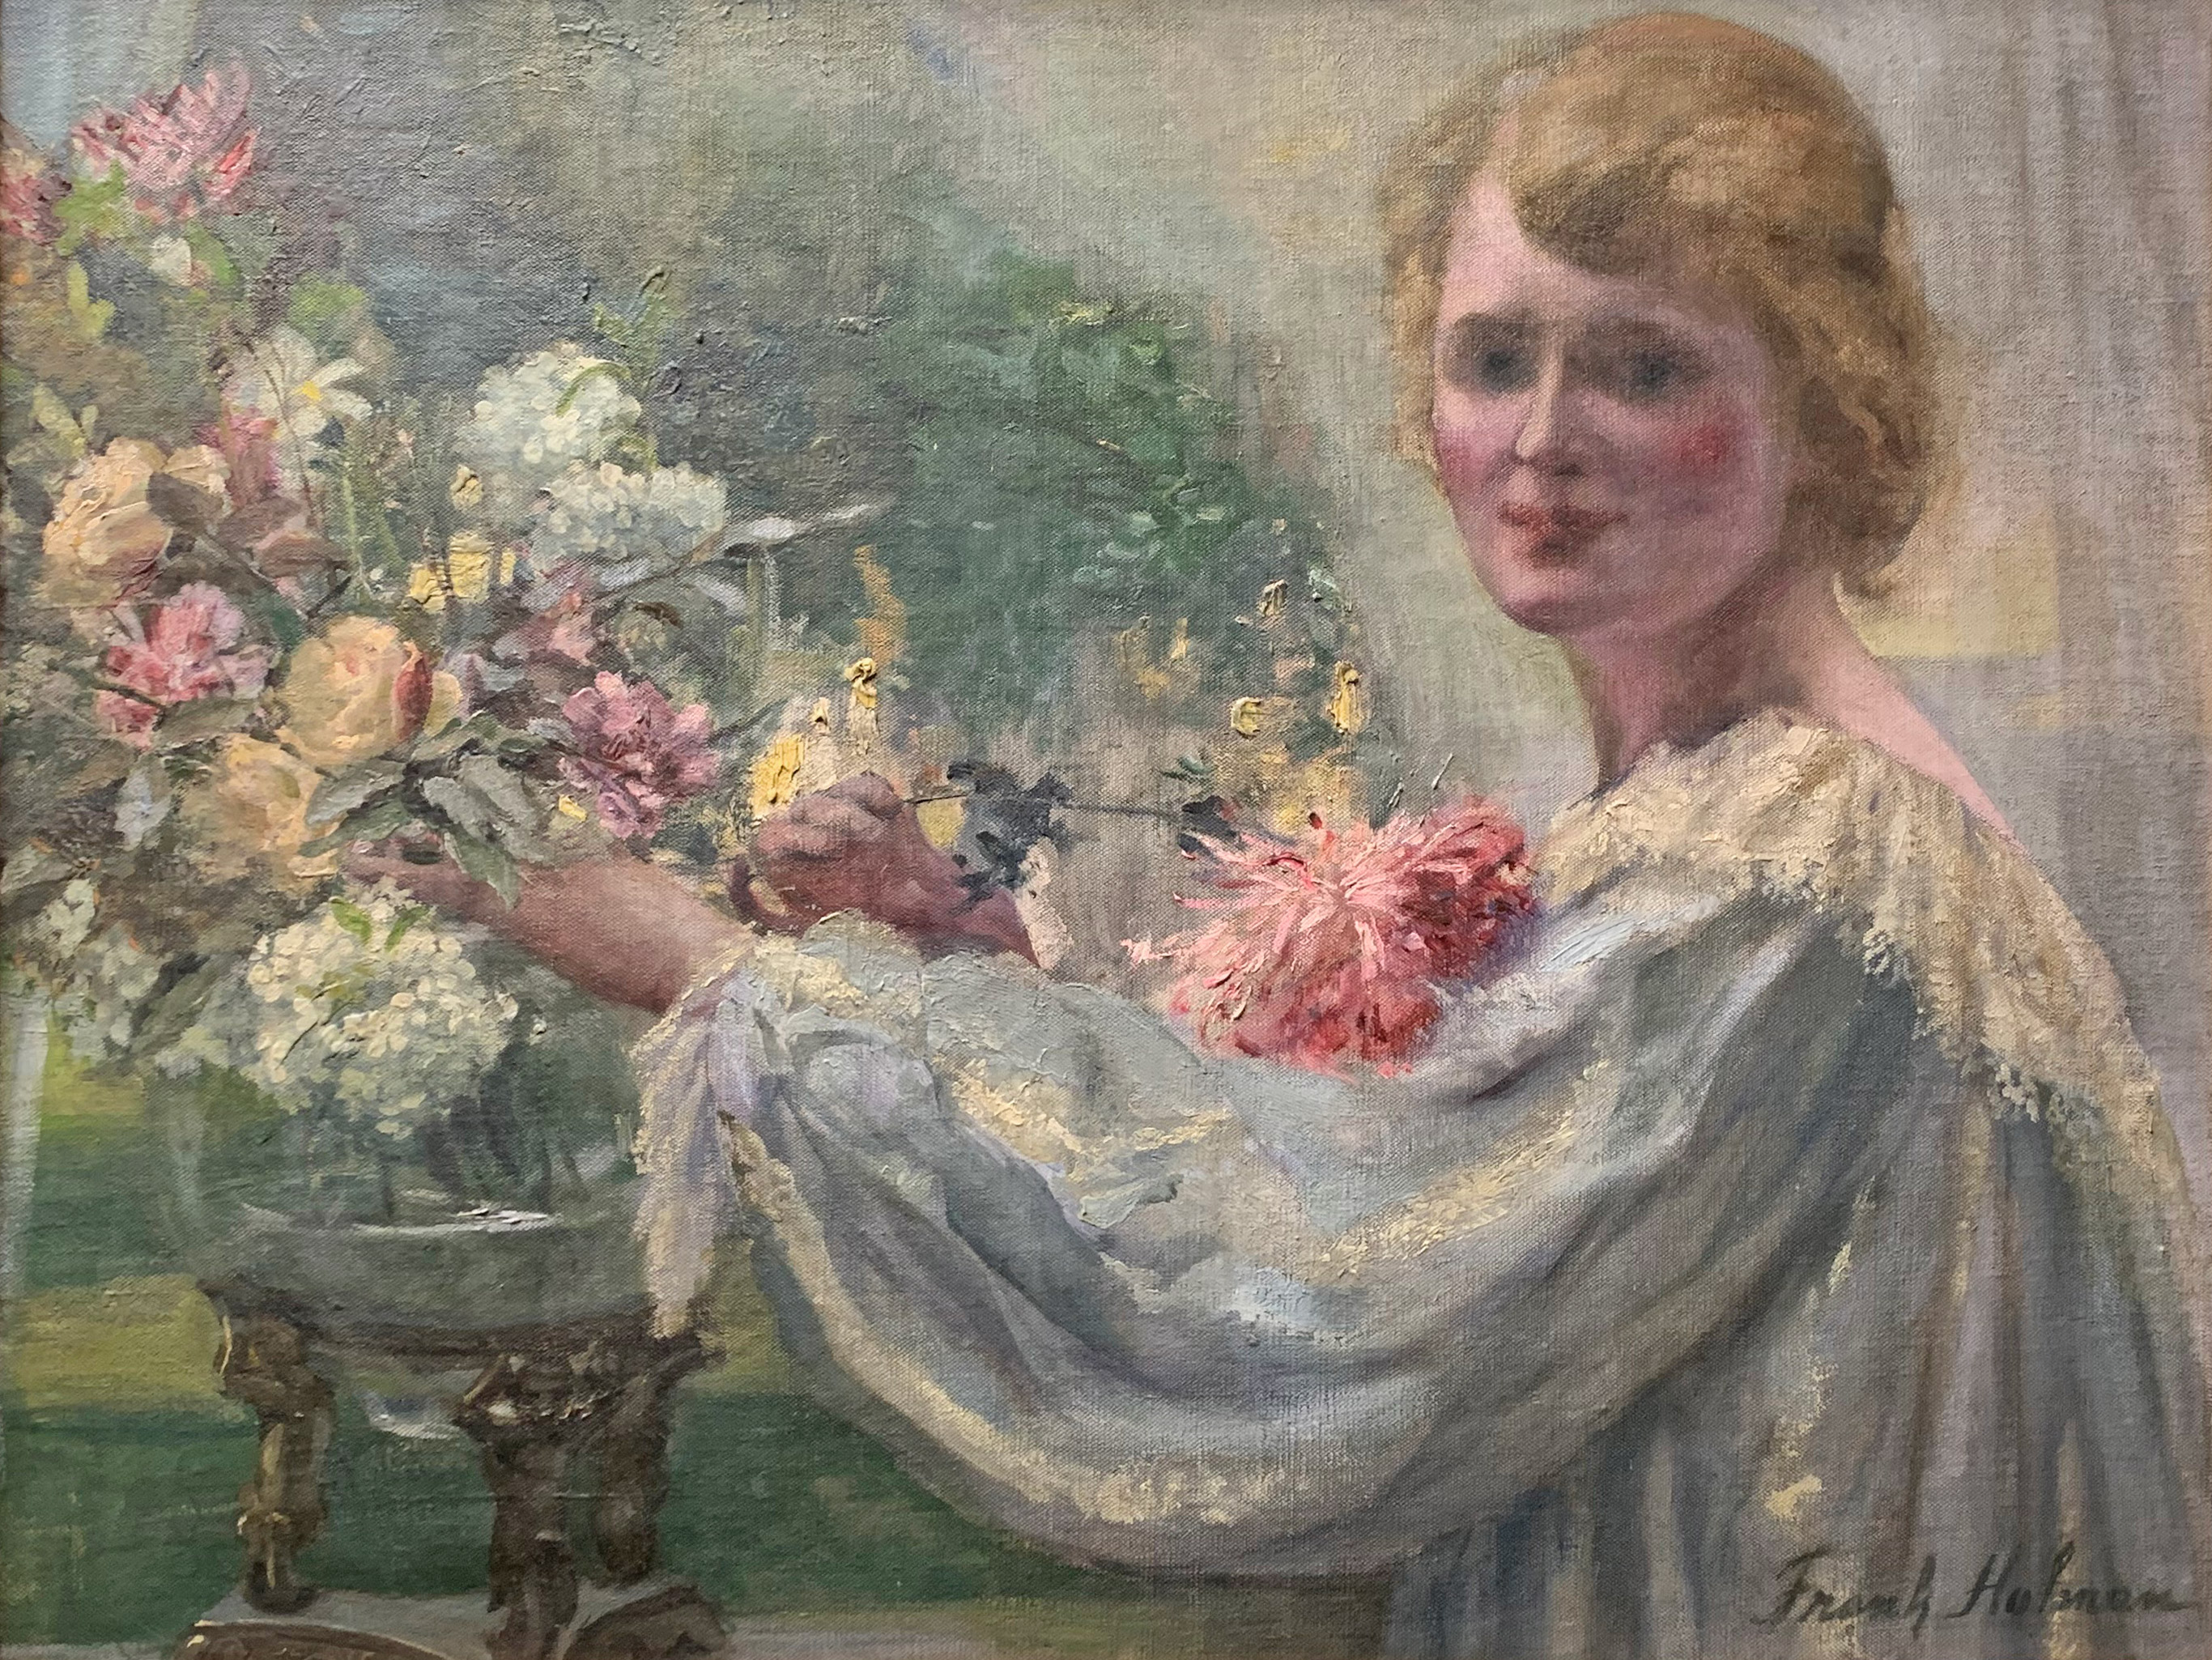 Girl with Flowers by Frank Holman